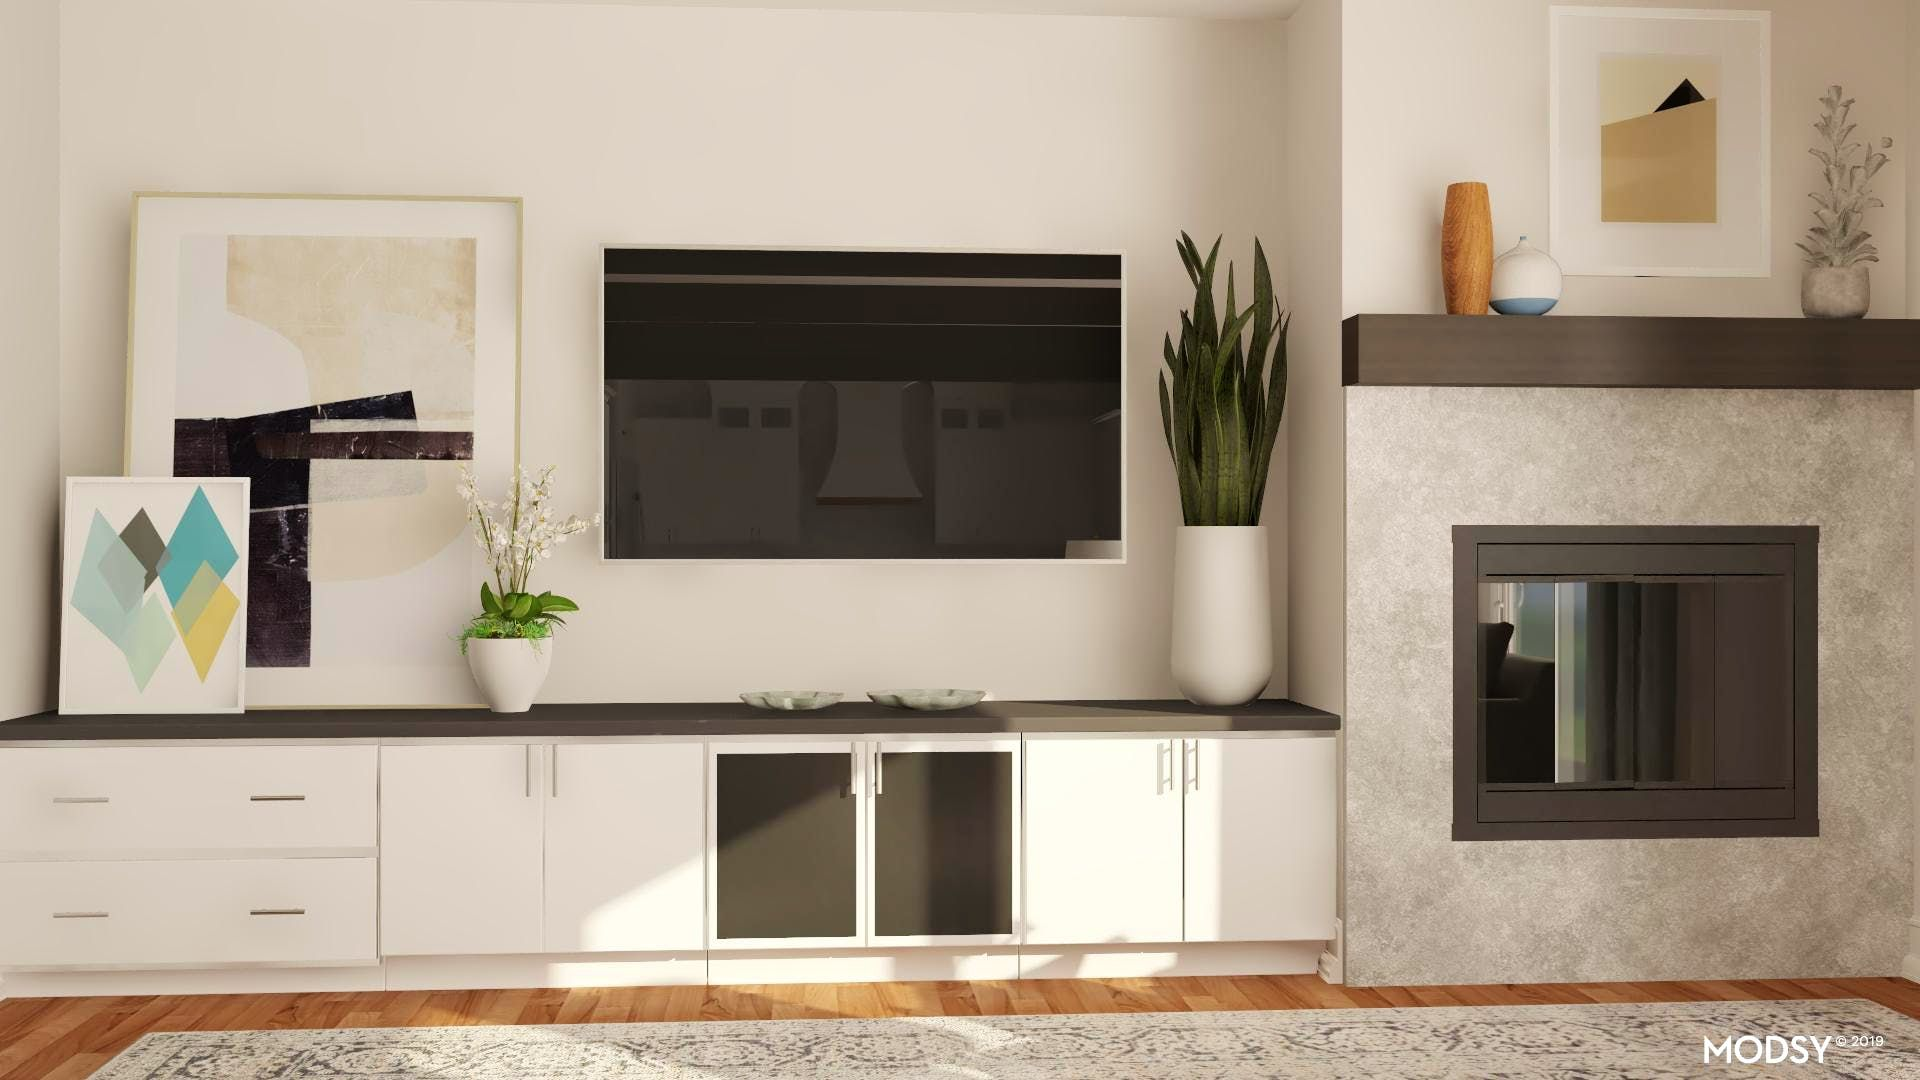 It's All About Symmetry: TV wall ideas in 2020 | Contemporary ...